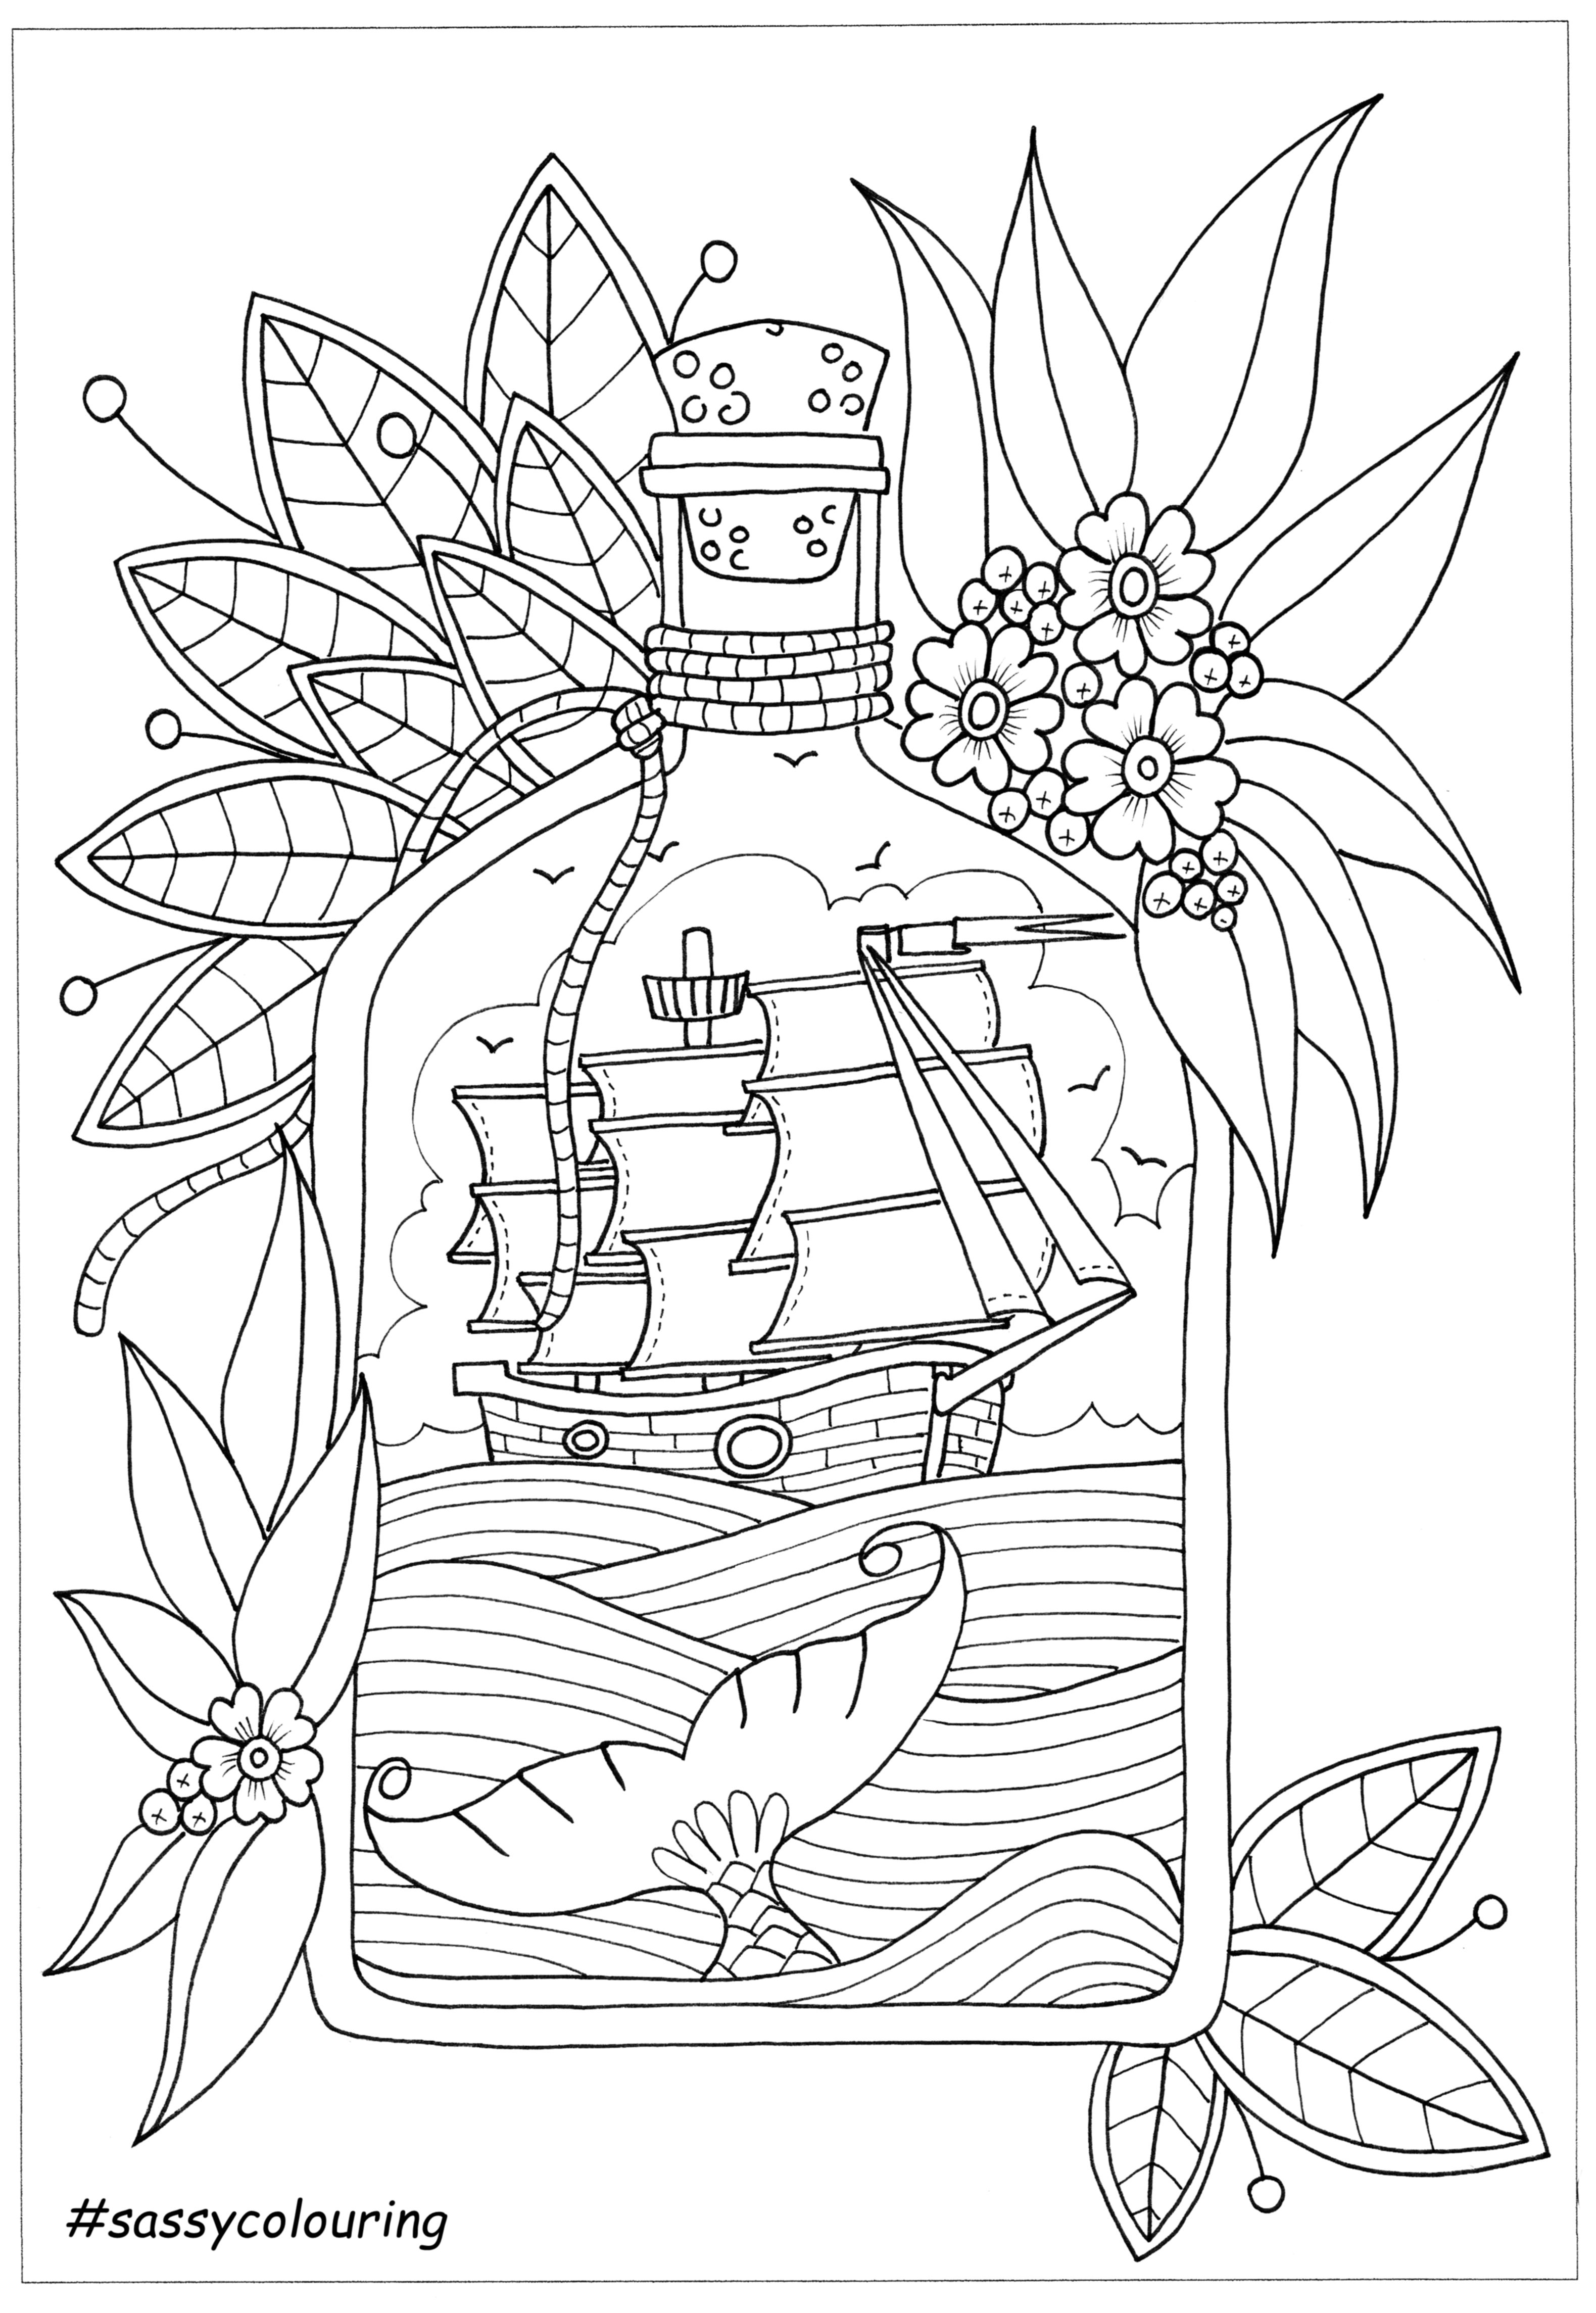 This Was A Free Page Offered By Sassy Colouring It Is Called Ship In A Bottle Check The Sassy Website And Fac Coloring Pages Coloring Books Doodle Coloring